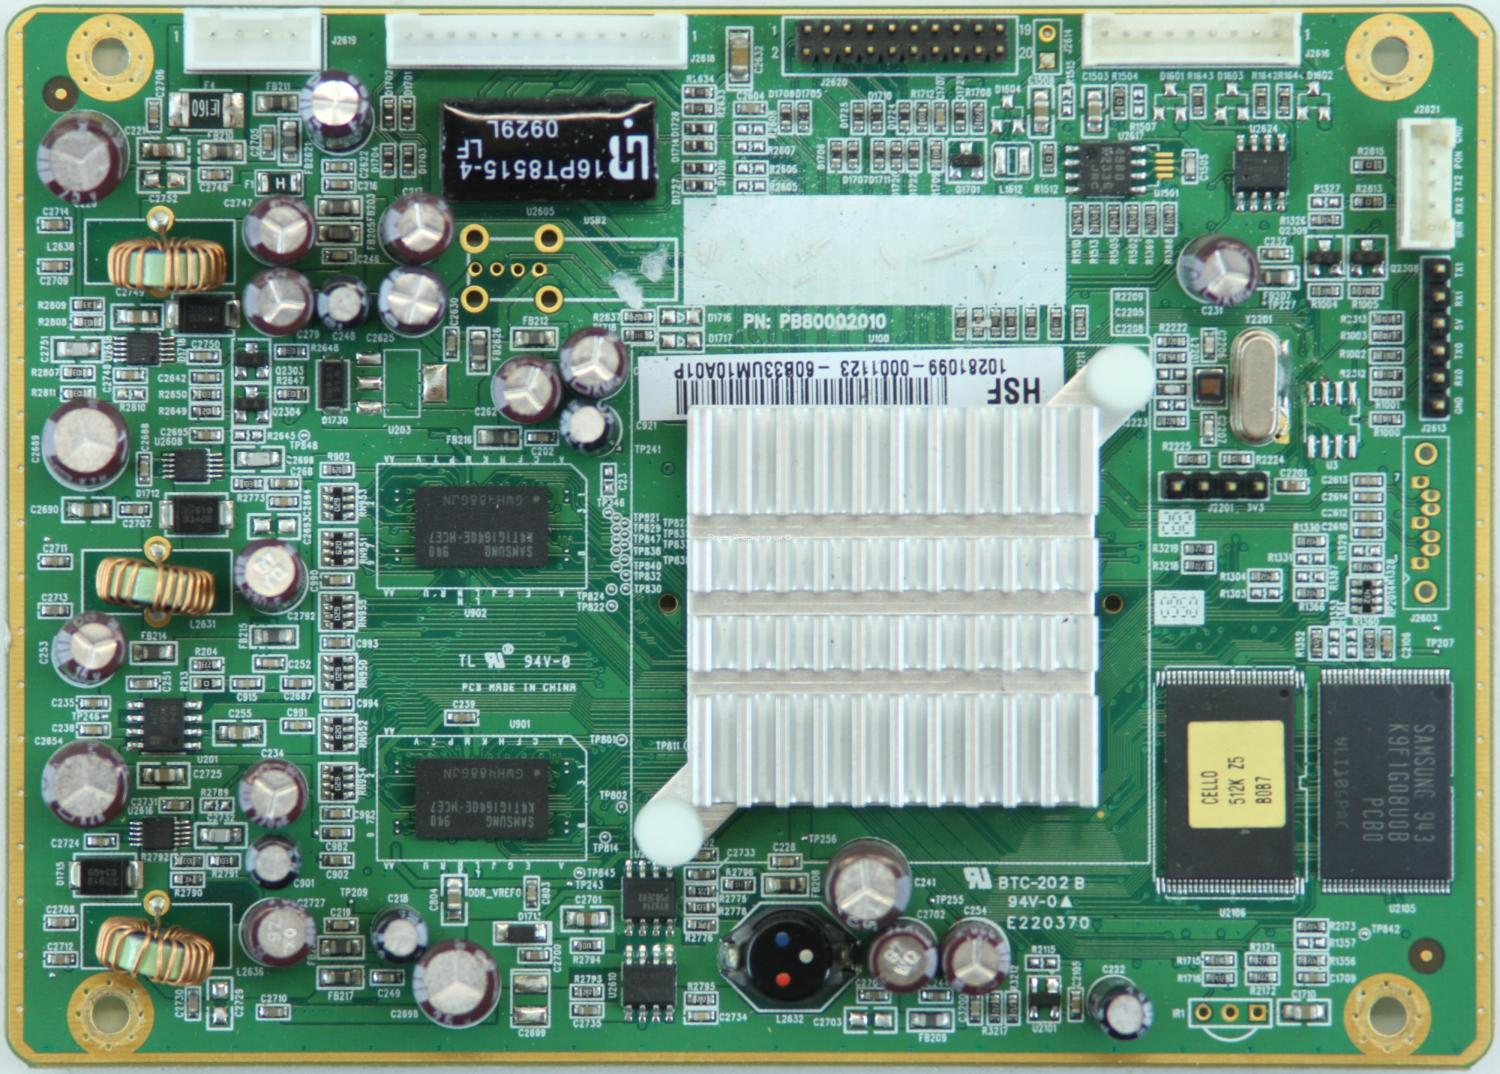 Cello C5566DVB-IPTV V1 - Interface Board - PB80002010